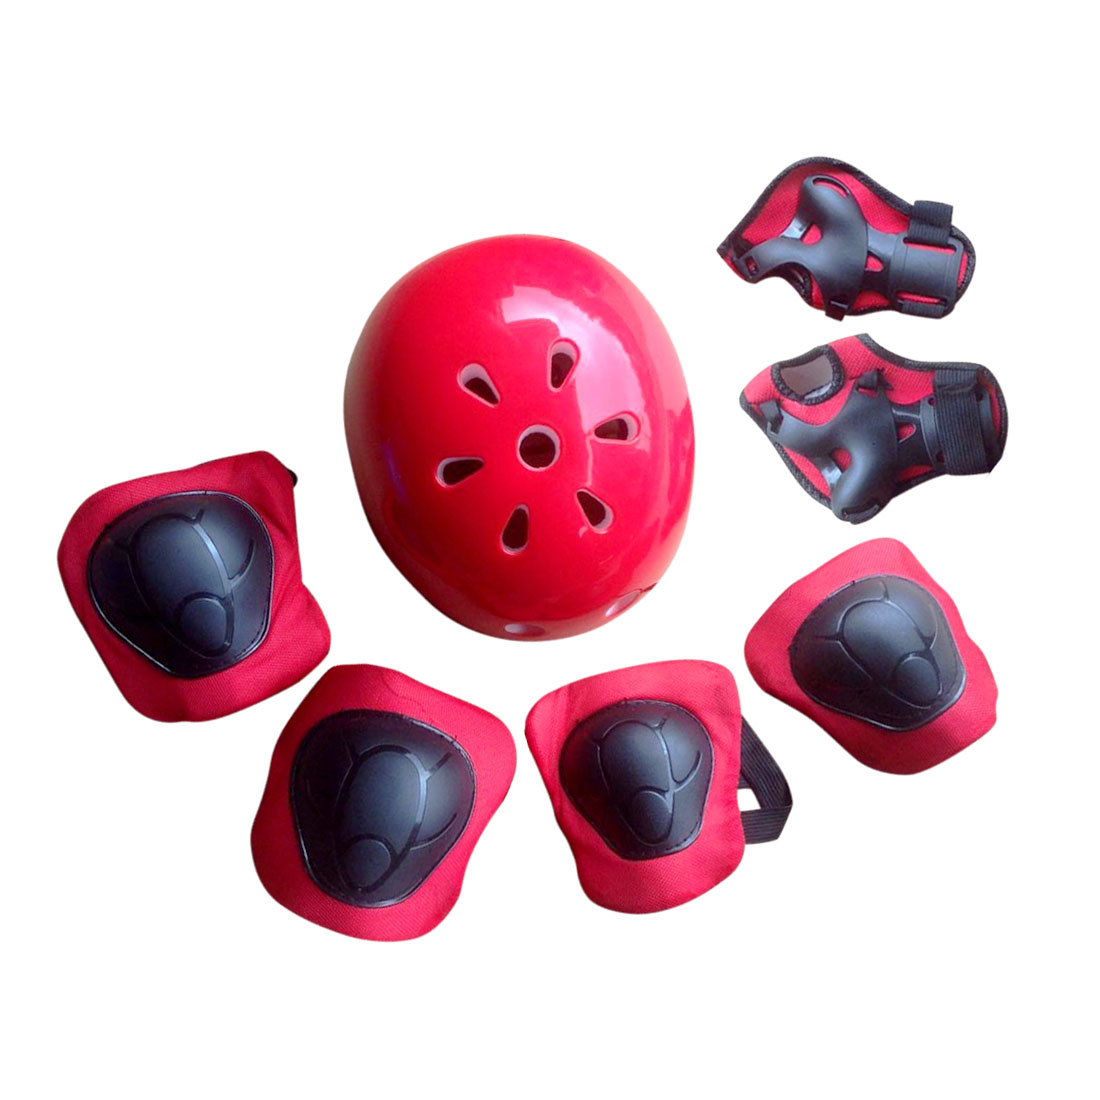 7pcs Size M Kids Protective Gear Set Mine Shaped Elbow Wrist Knee Pads and Plum Blossom Helmet Sport Safety Protective... by